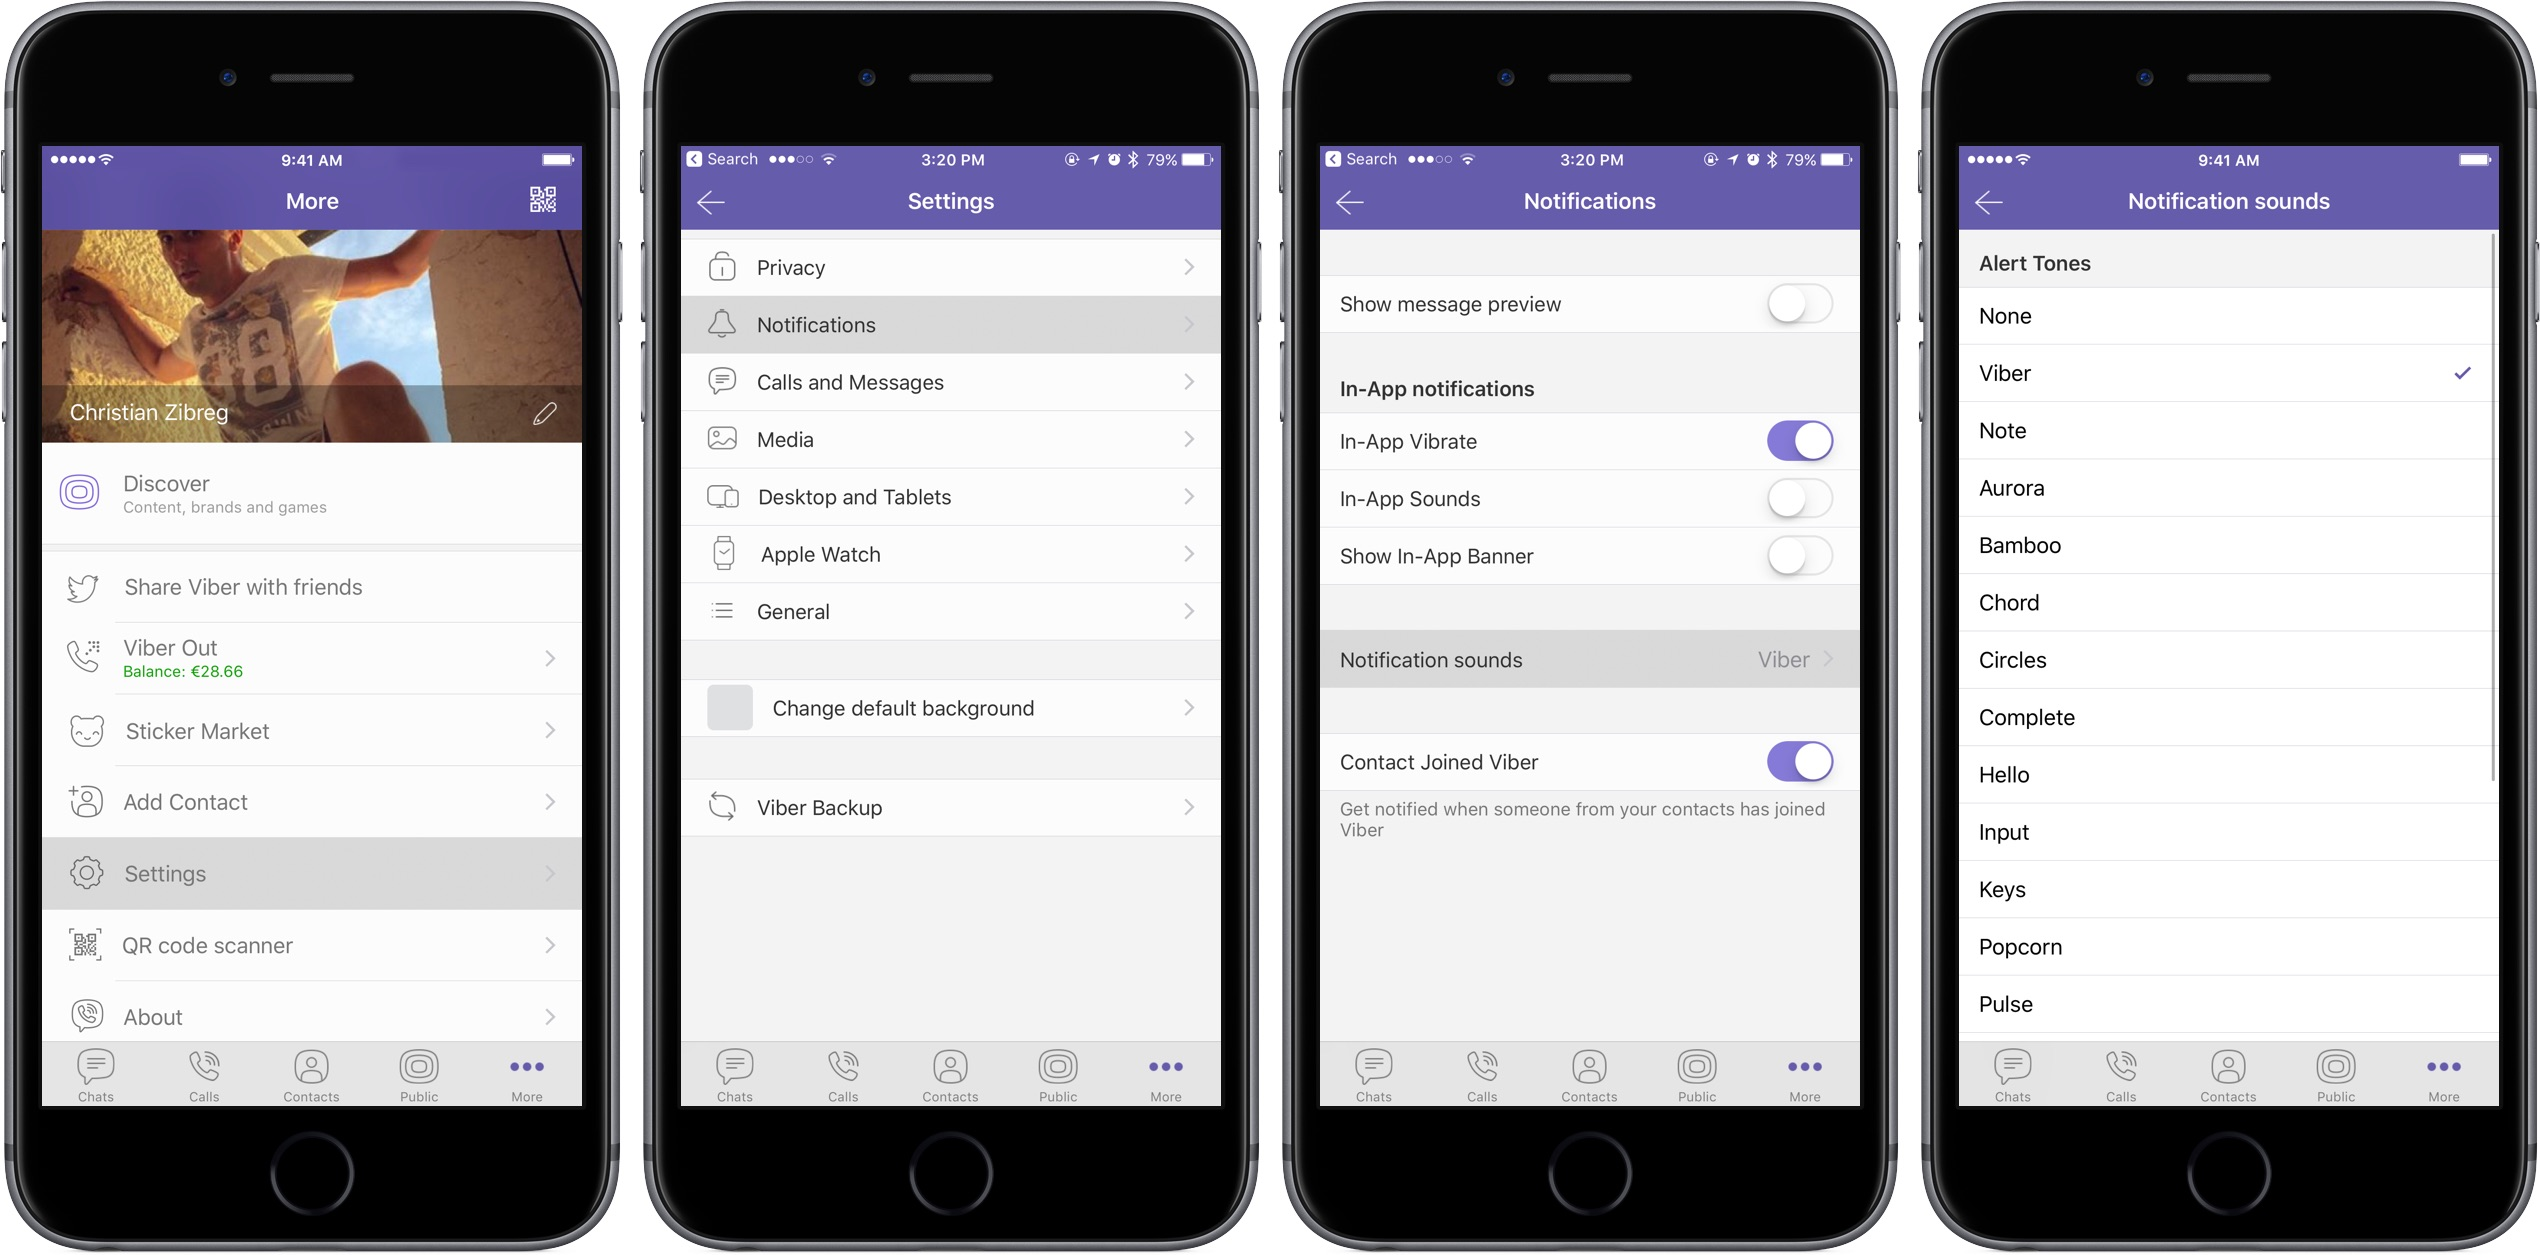 How to change default notification sound in Viber for iPhone